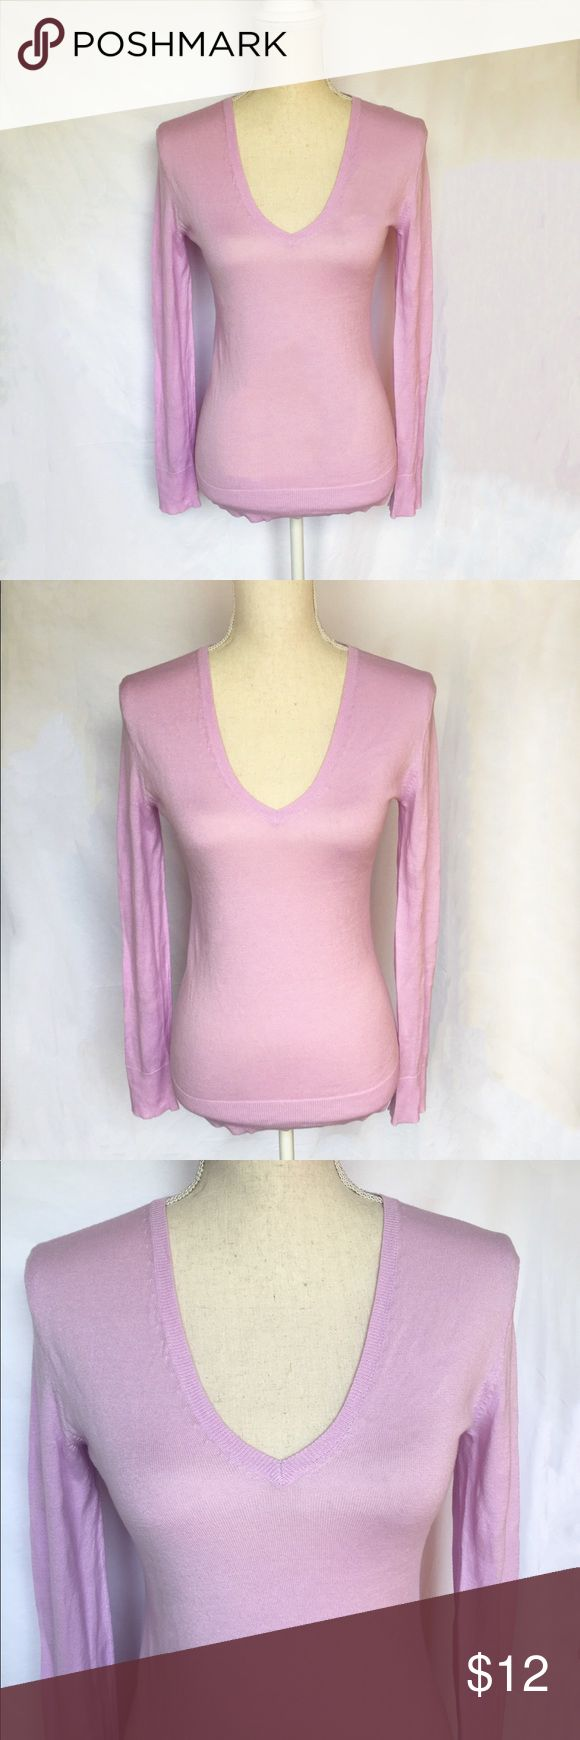 Brand new Gap sexy V neck light sweater Brand new never worn. Beautiful light purple color. 100% cotton material, super soft and comfy. Stretchy, easy to fit with deep V neck, for sexy casual everyday look. And it's a perfect sexy underneath shirt to match with any darker color blazers or jackets. GAP Tops Sweatshirts & Hoodies